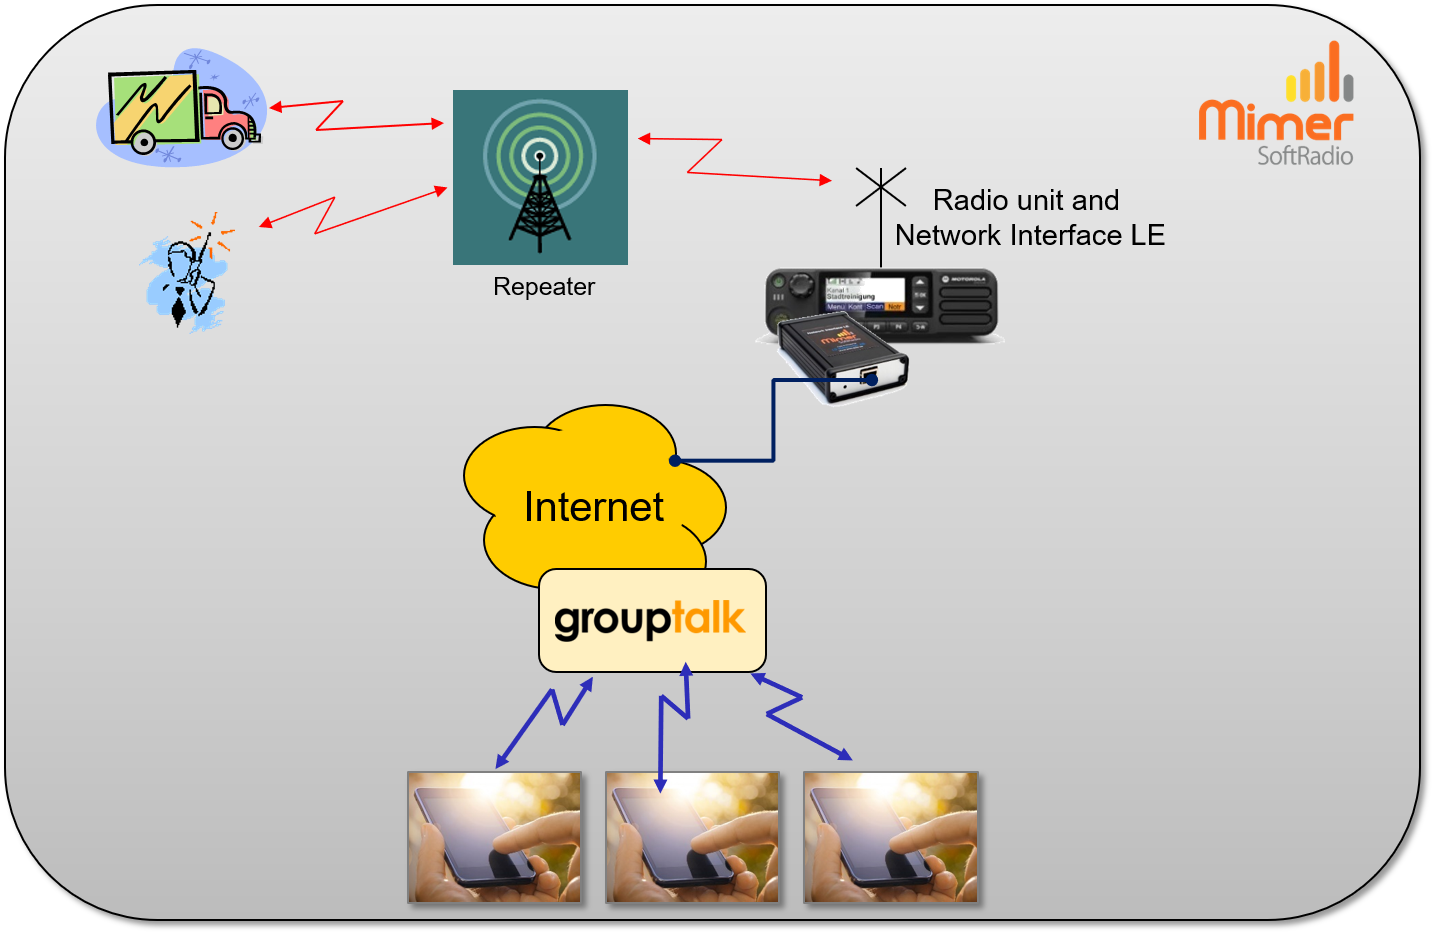 GroupTalk users connected to a radio system through a Mimer Network Interface LE.